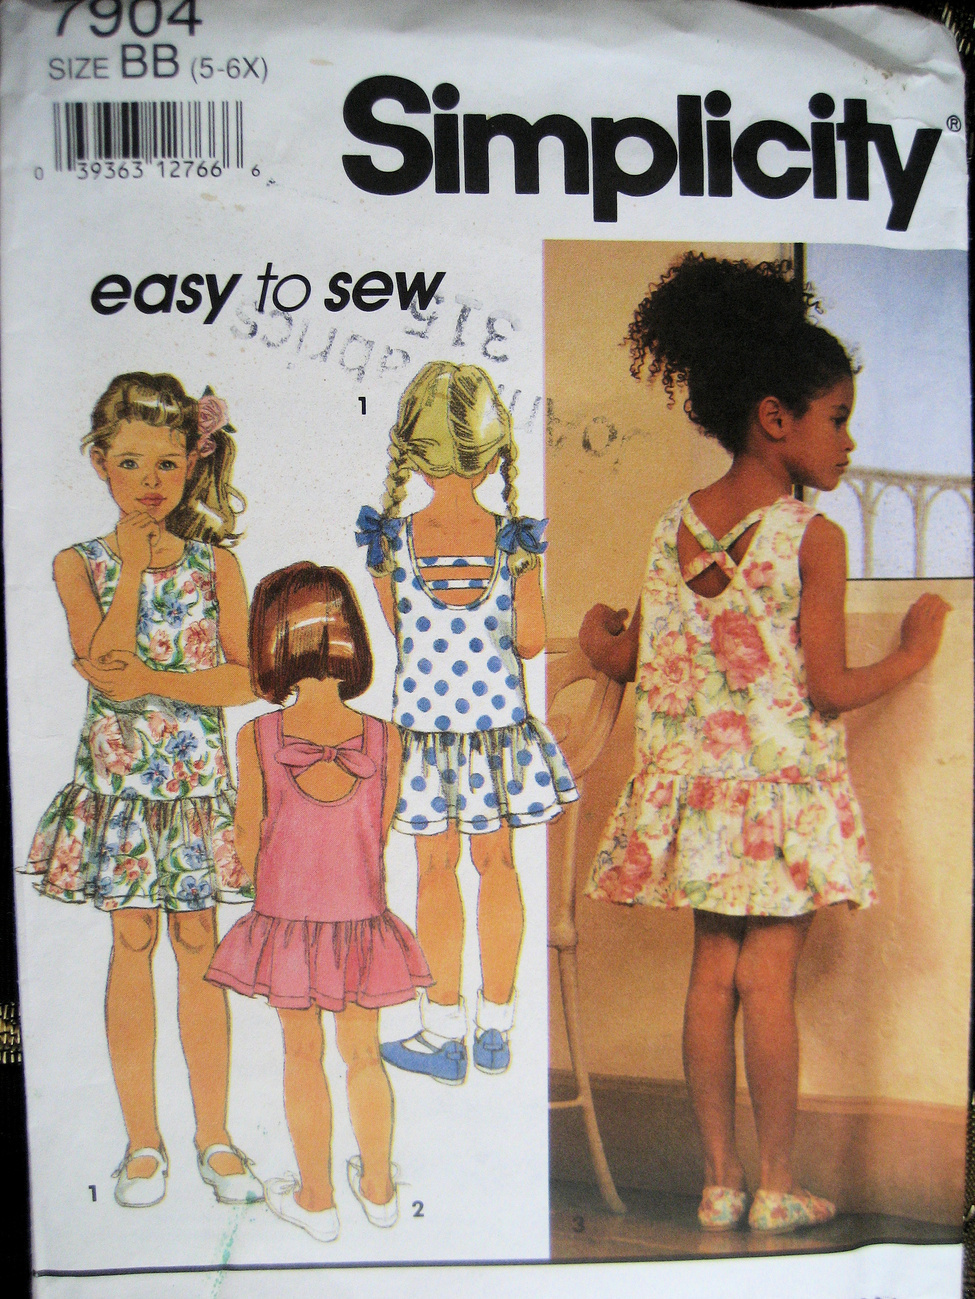 New Sewing Pattern Girls 5 and 6x Dress Simplicity 7904